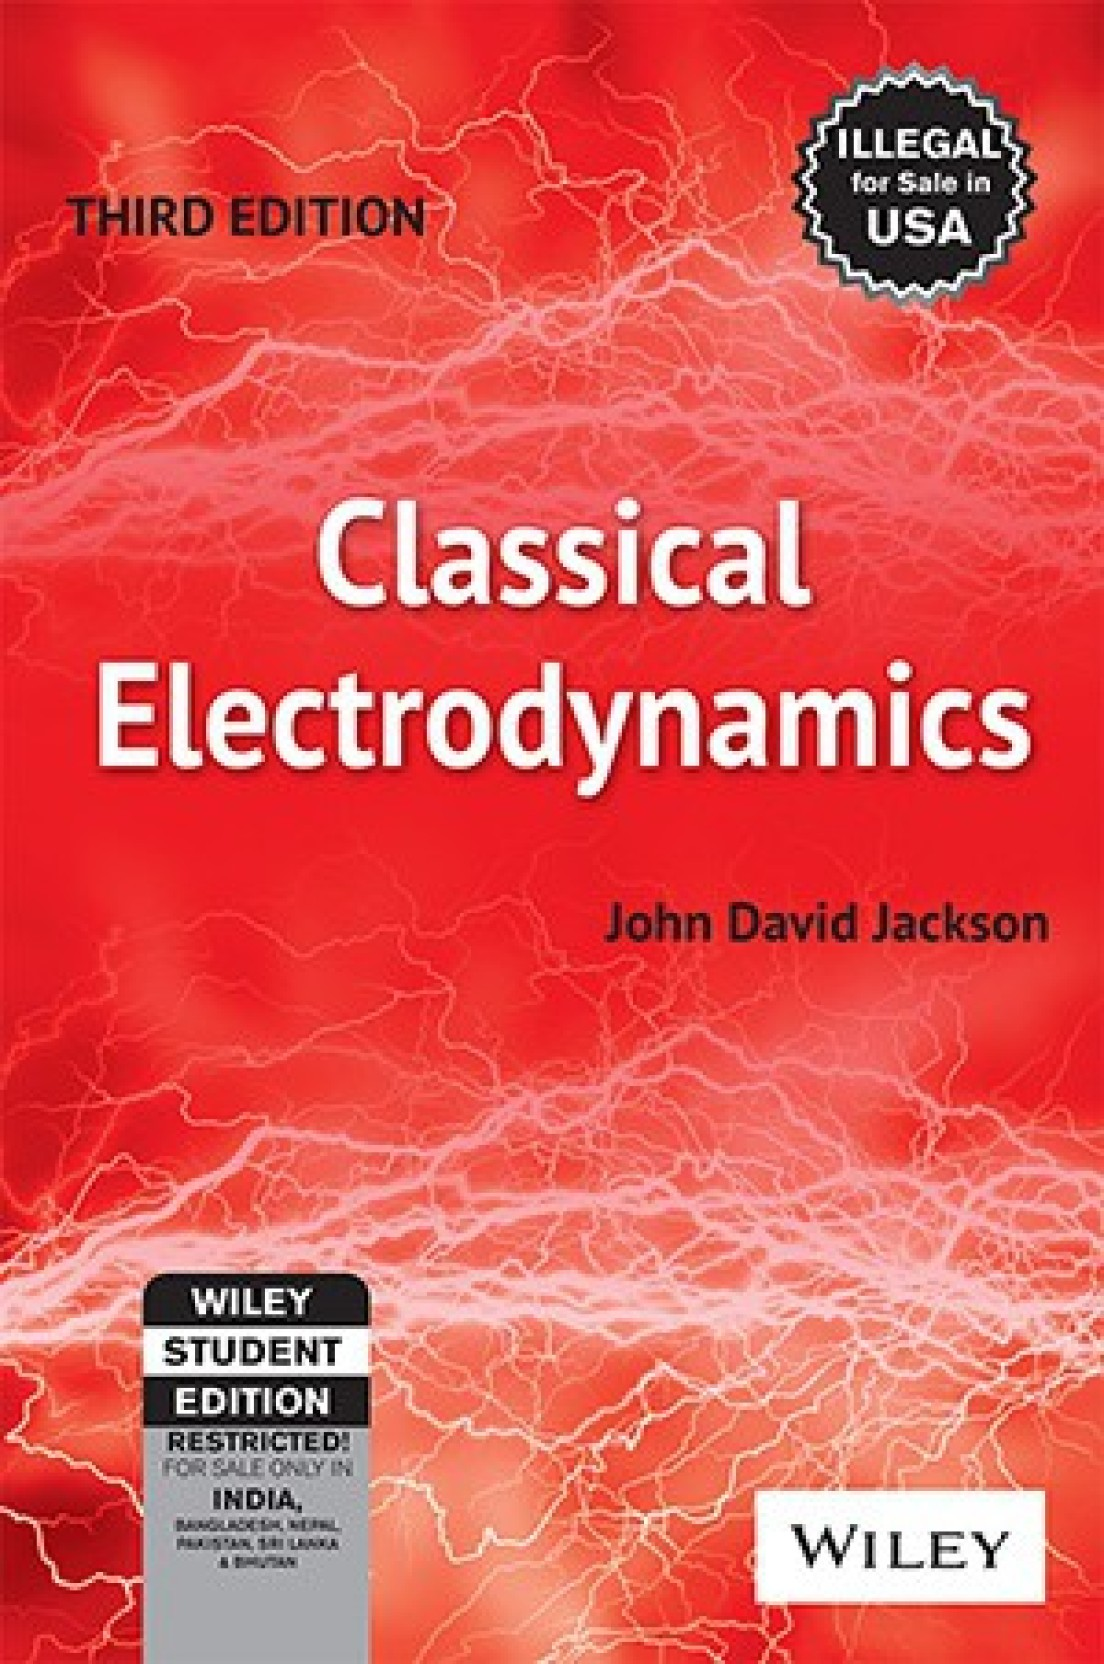 Classical Electrodynamics 3rd Edition. ADD TO CART